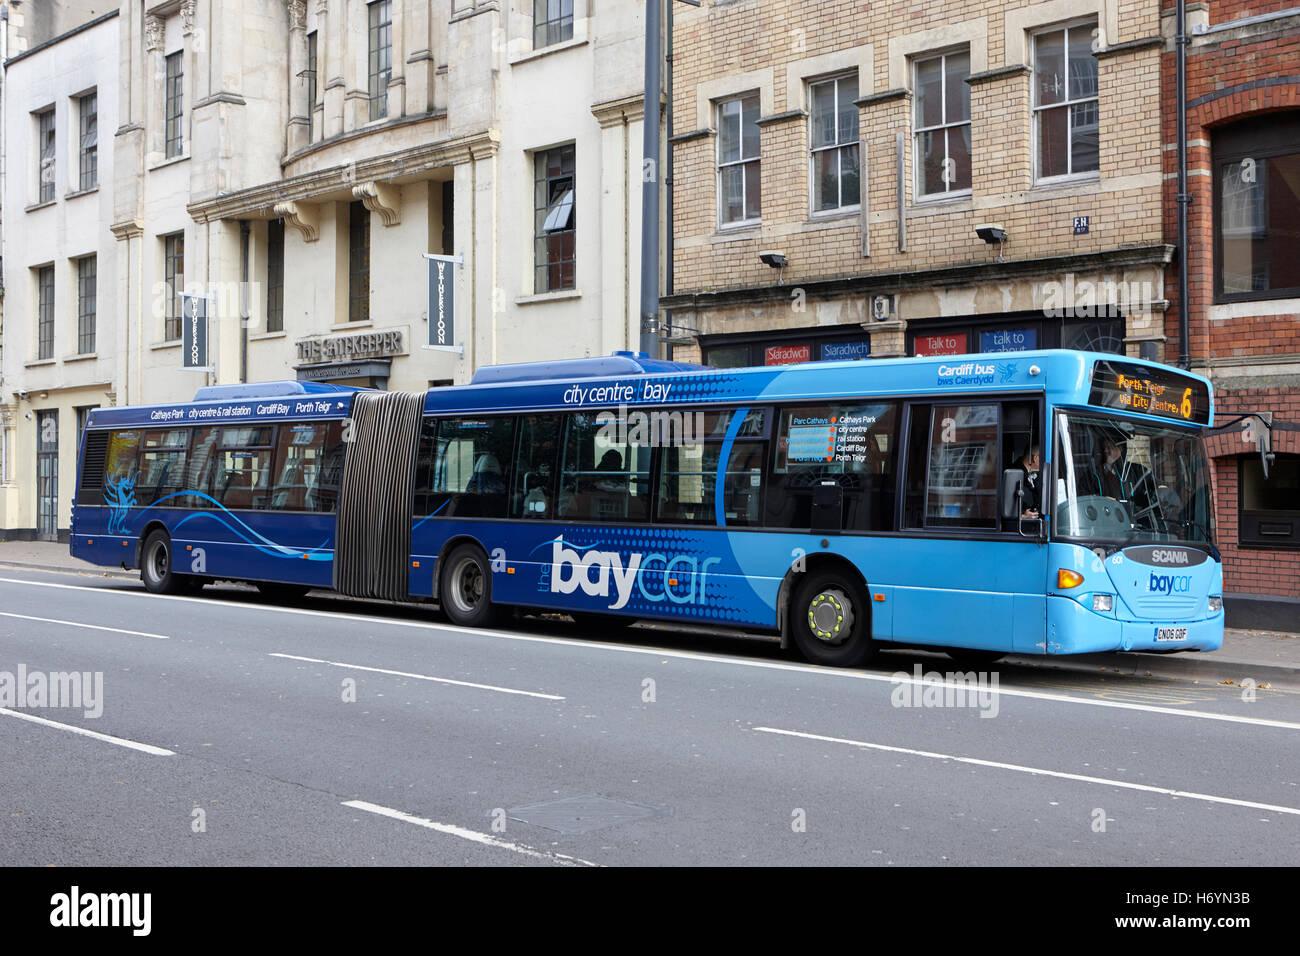 cardiff bus bay car public transport cardiff city centre. Black Bedroom Furniture Sets. Home Design Ideas